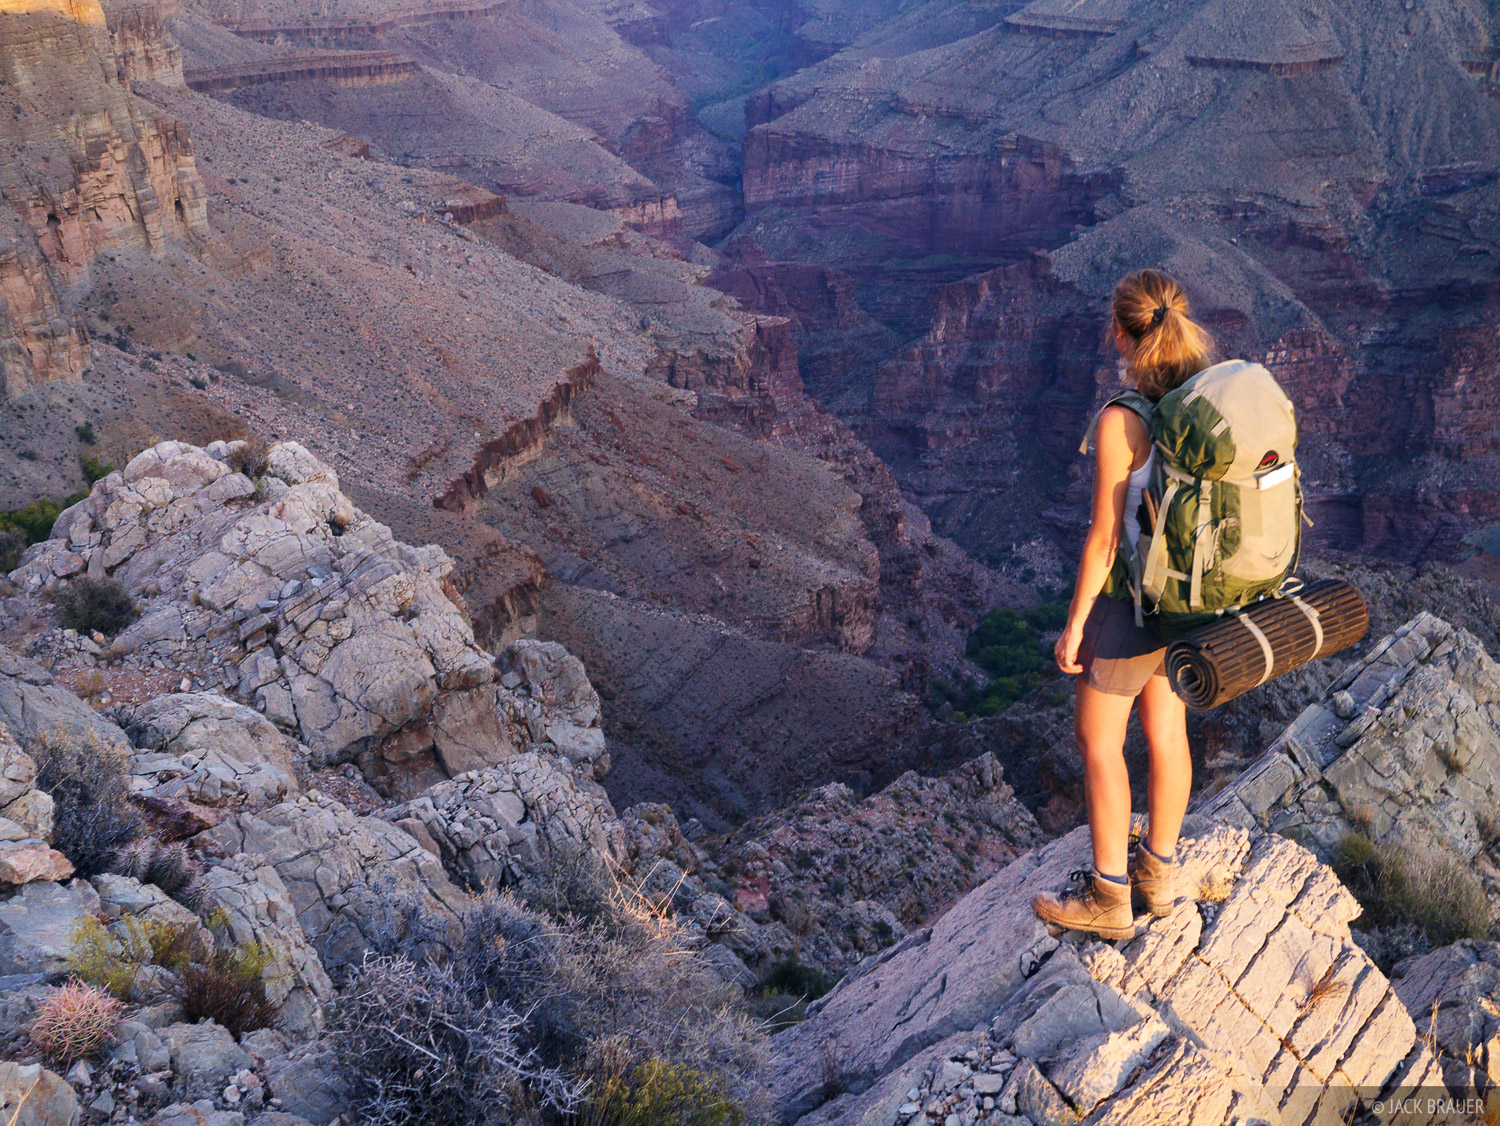 Claudia gazes into the Tapeats Creek canyon, a side canyon of the Grand Canyon.